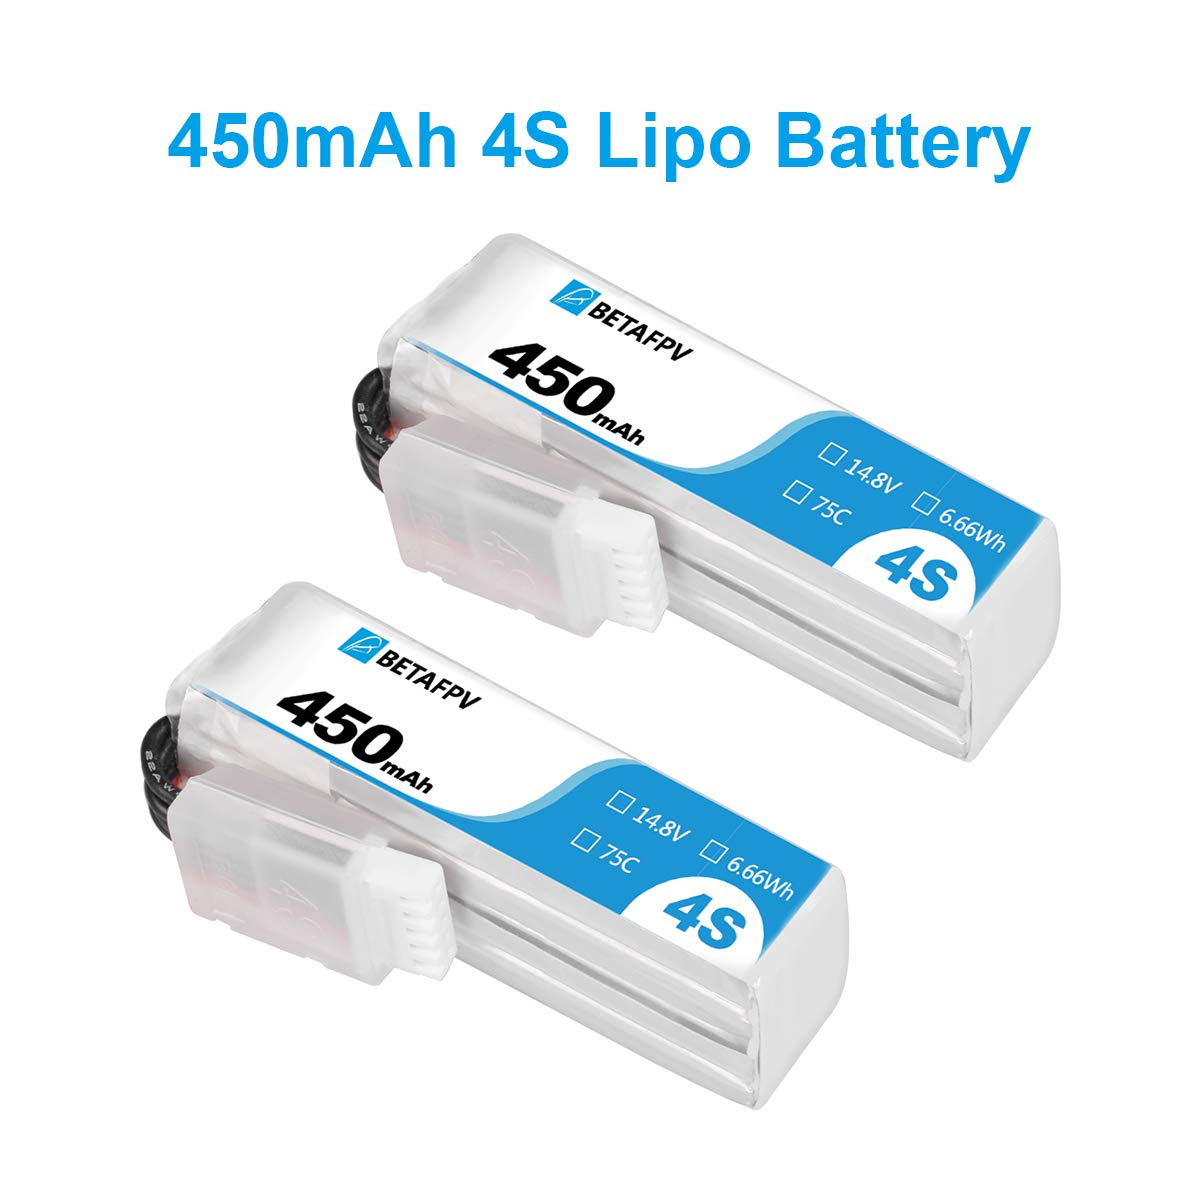 BETAFPV 2pcs 450mah 4S Lipo Battery 75C/150C 14.8V with XT30 16AWG Silicone Wire for Beta85X 4S Micro Drone